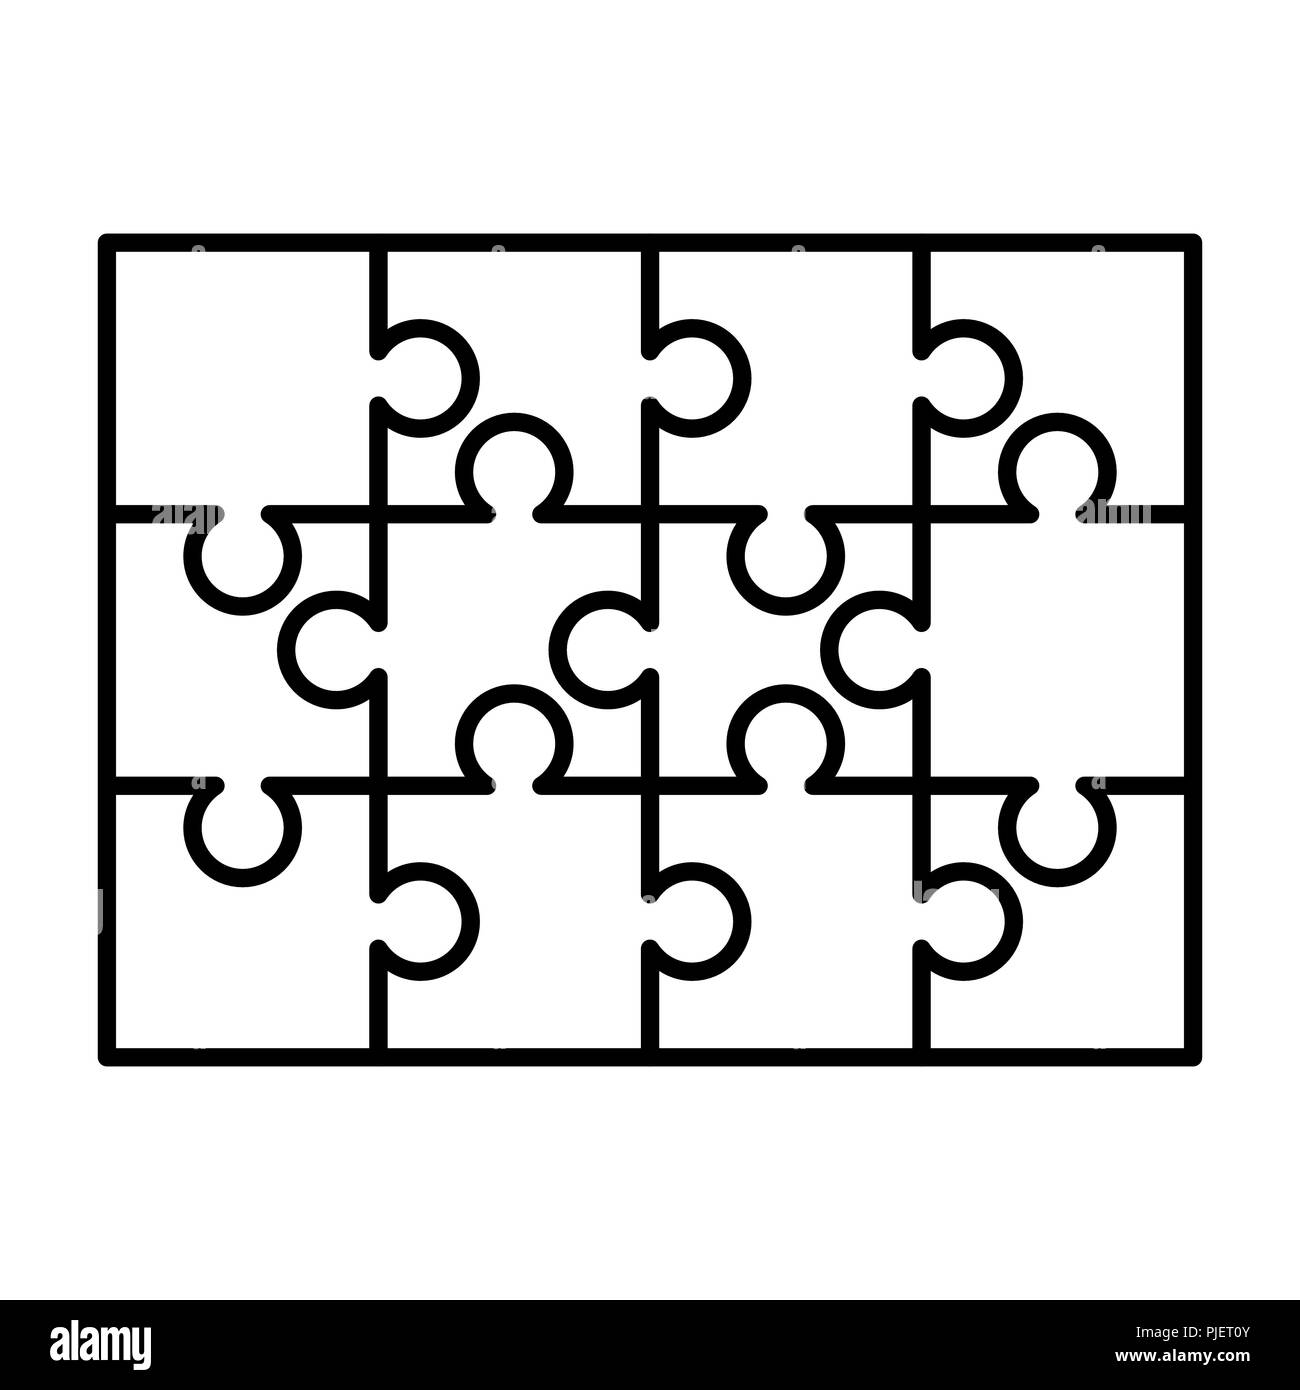 graphic regarding Printable Puzzle Piece named 12 white puzzles areas organized within just a rectangle form